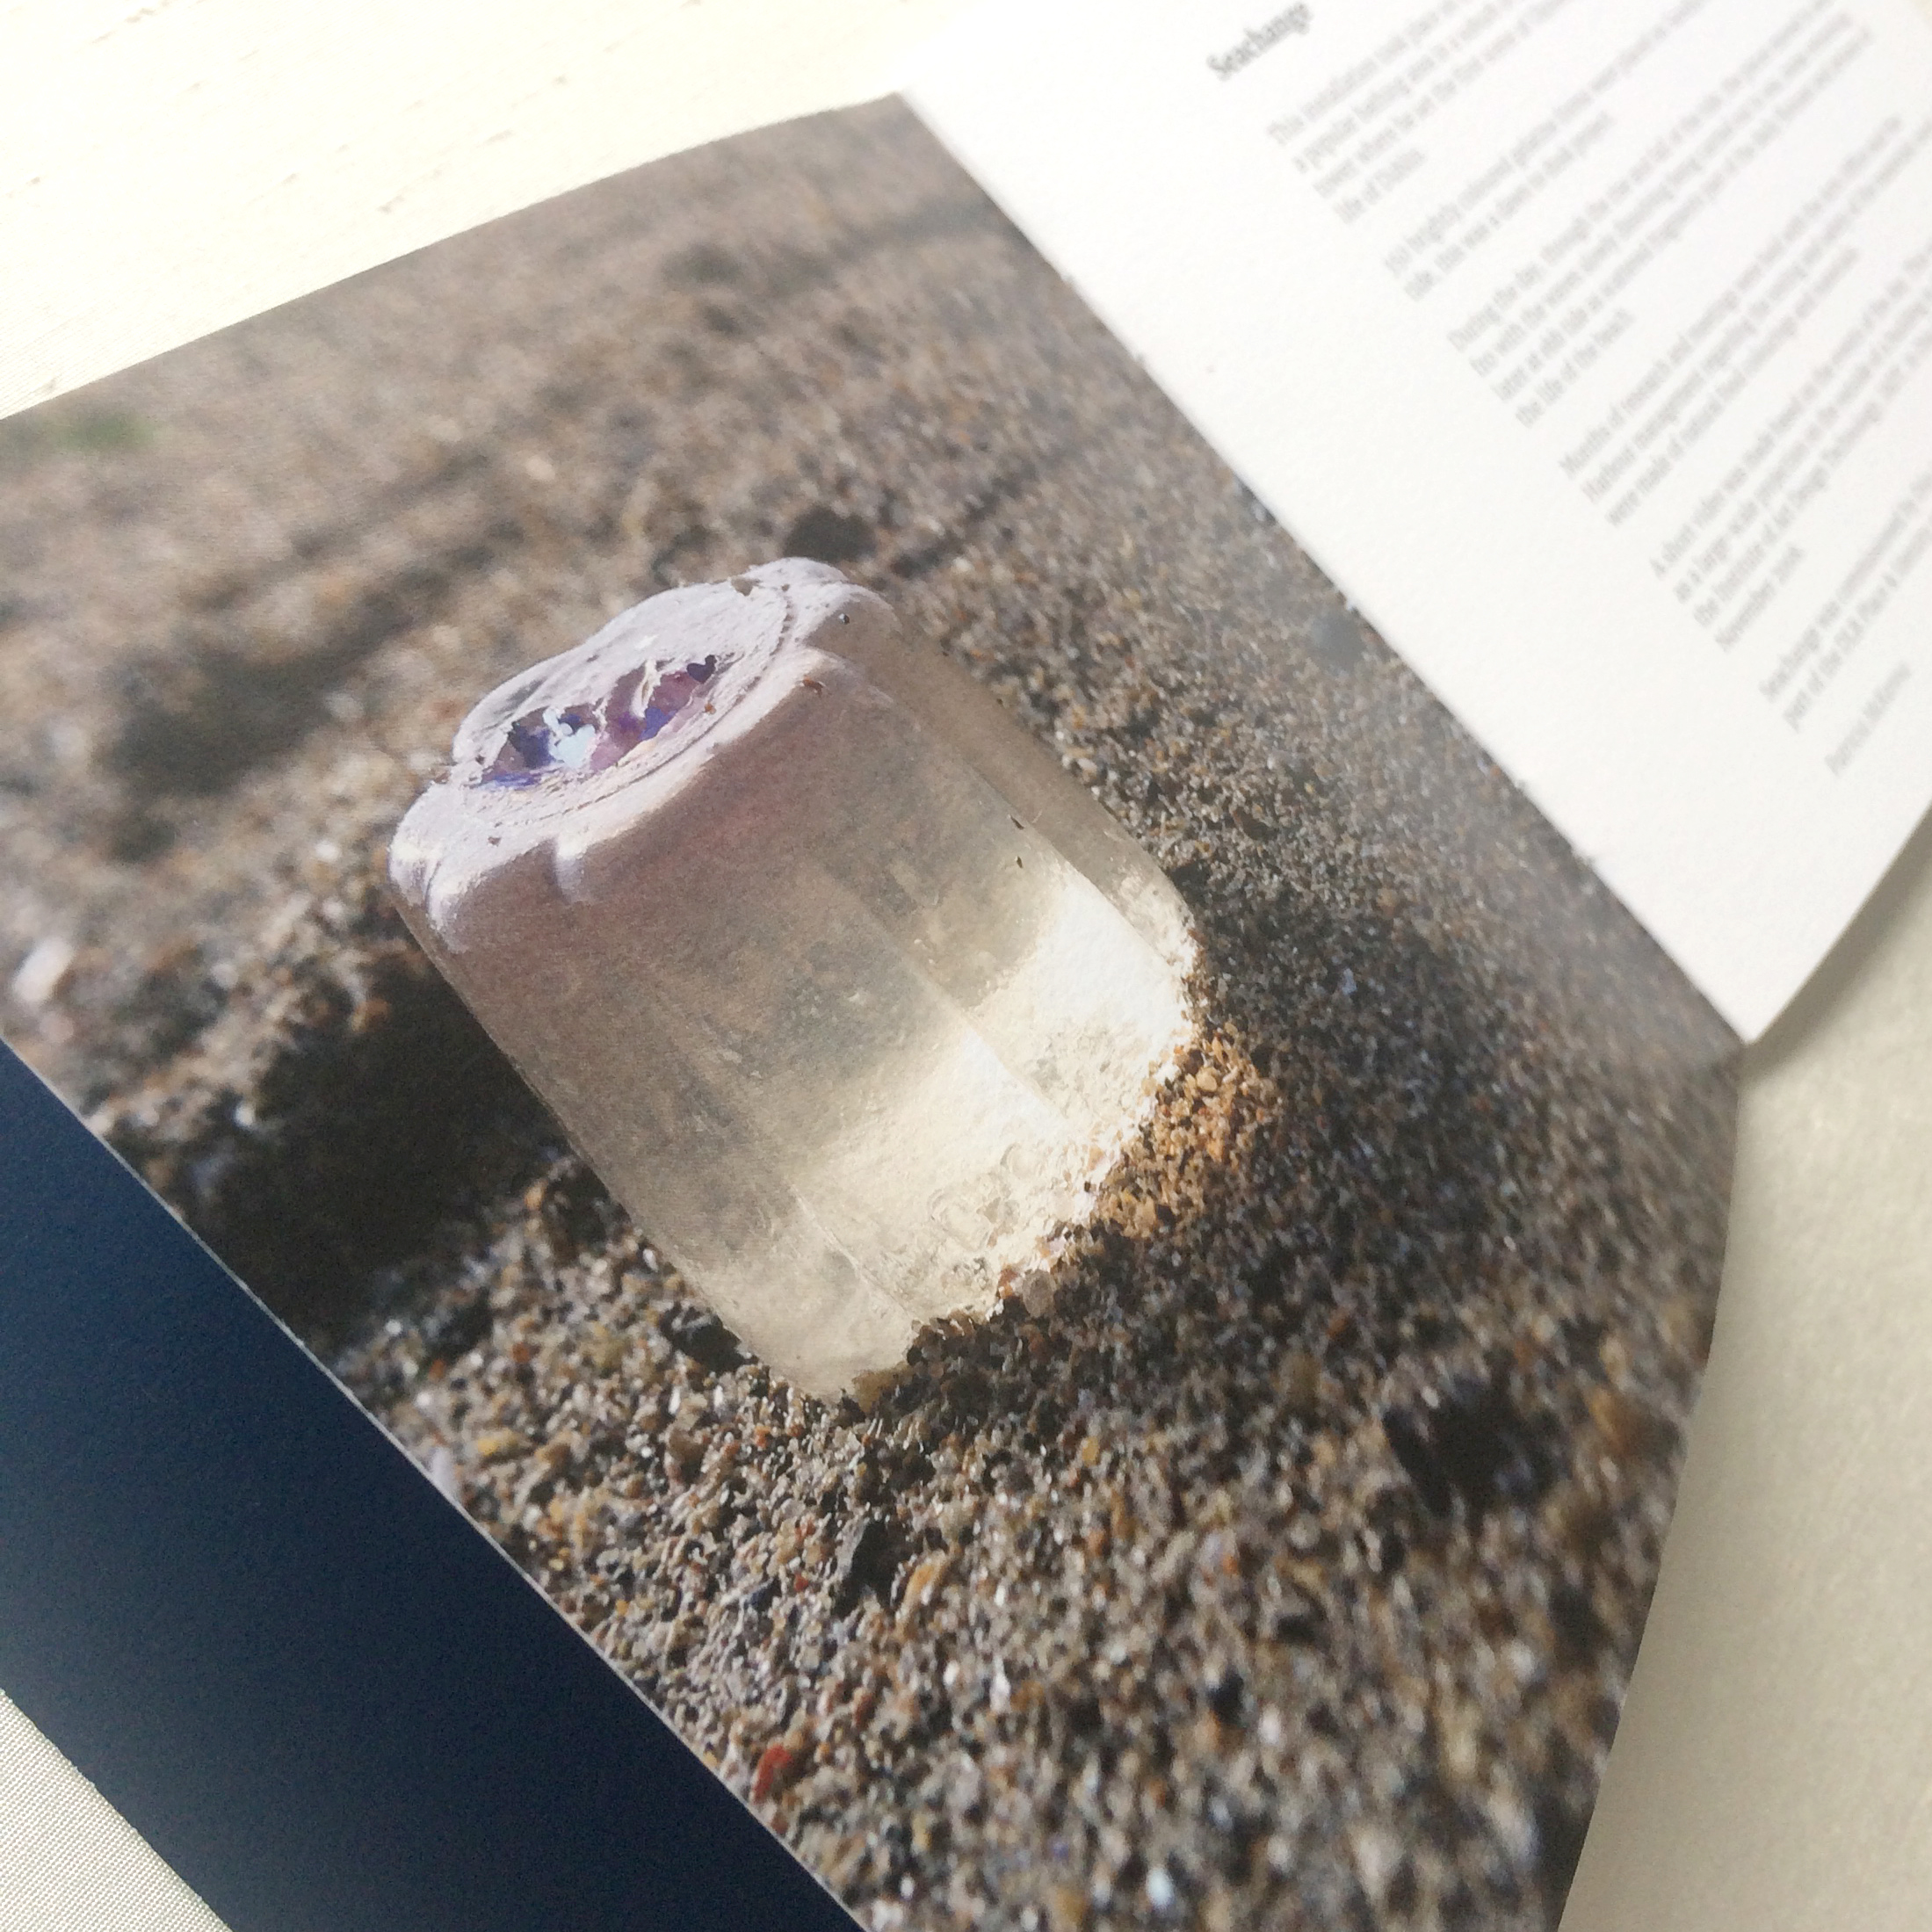 Photo of jelly on sand inside artist catalogue